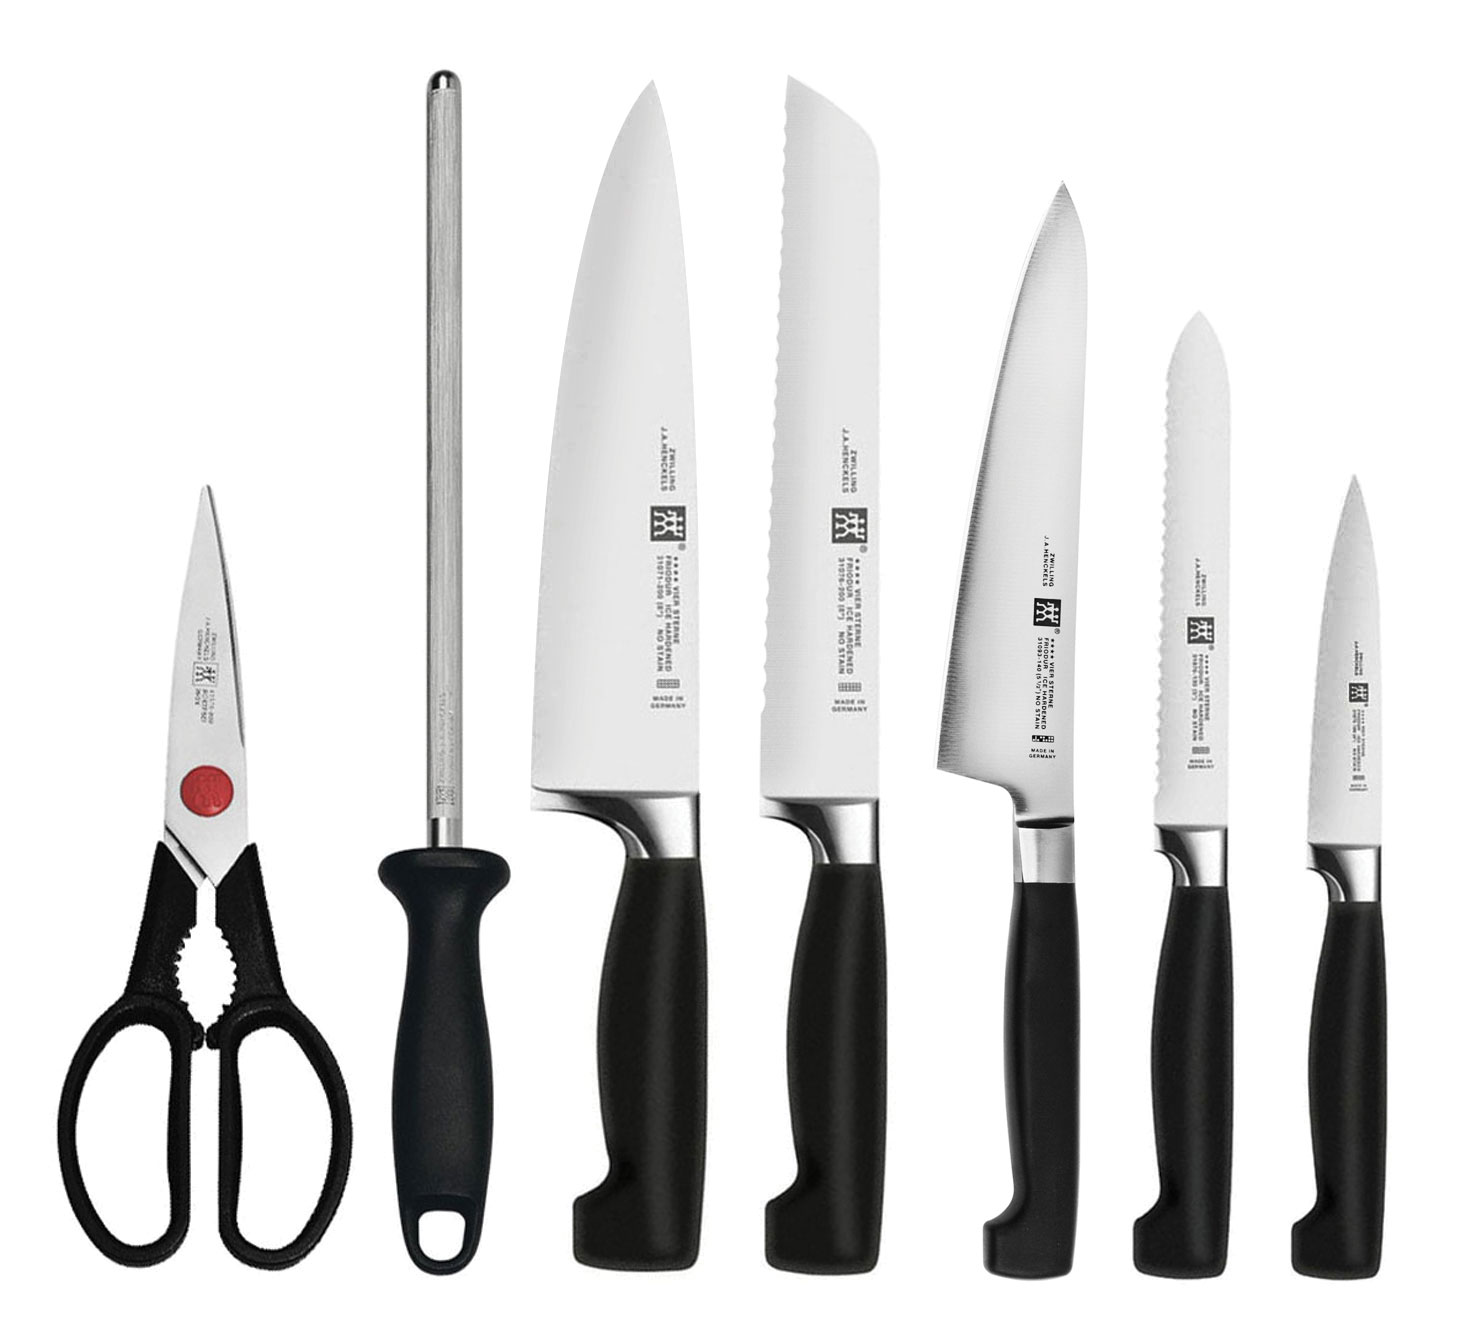 Zwilling Four Star Set 8 Piece With Knife Block By J A Henckels Cutlery And More